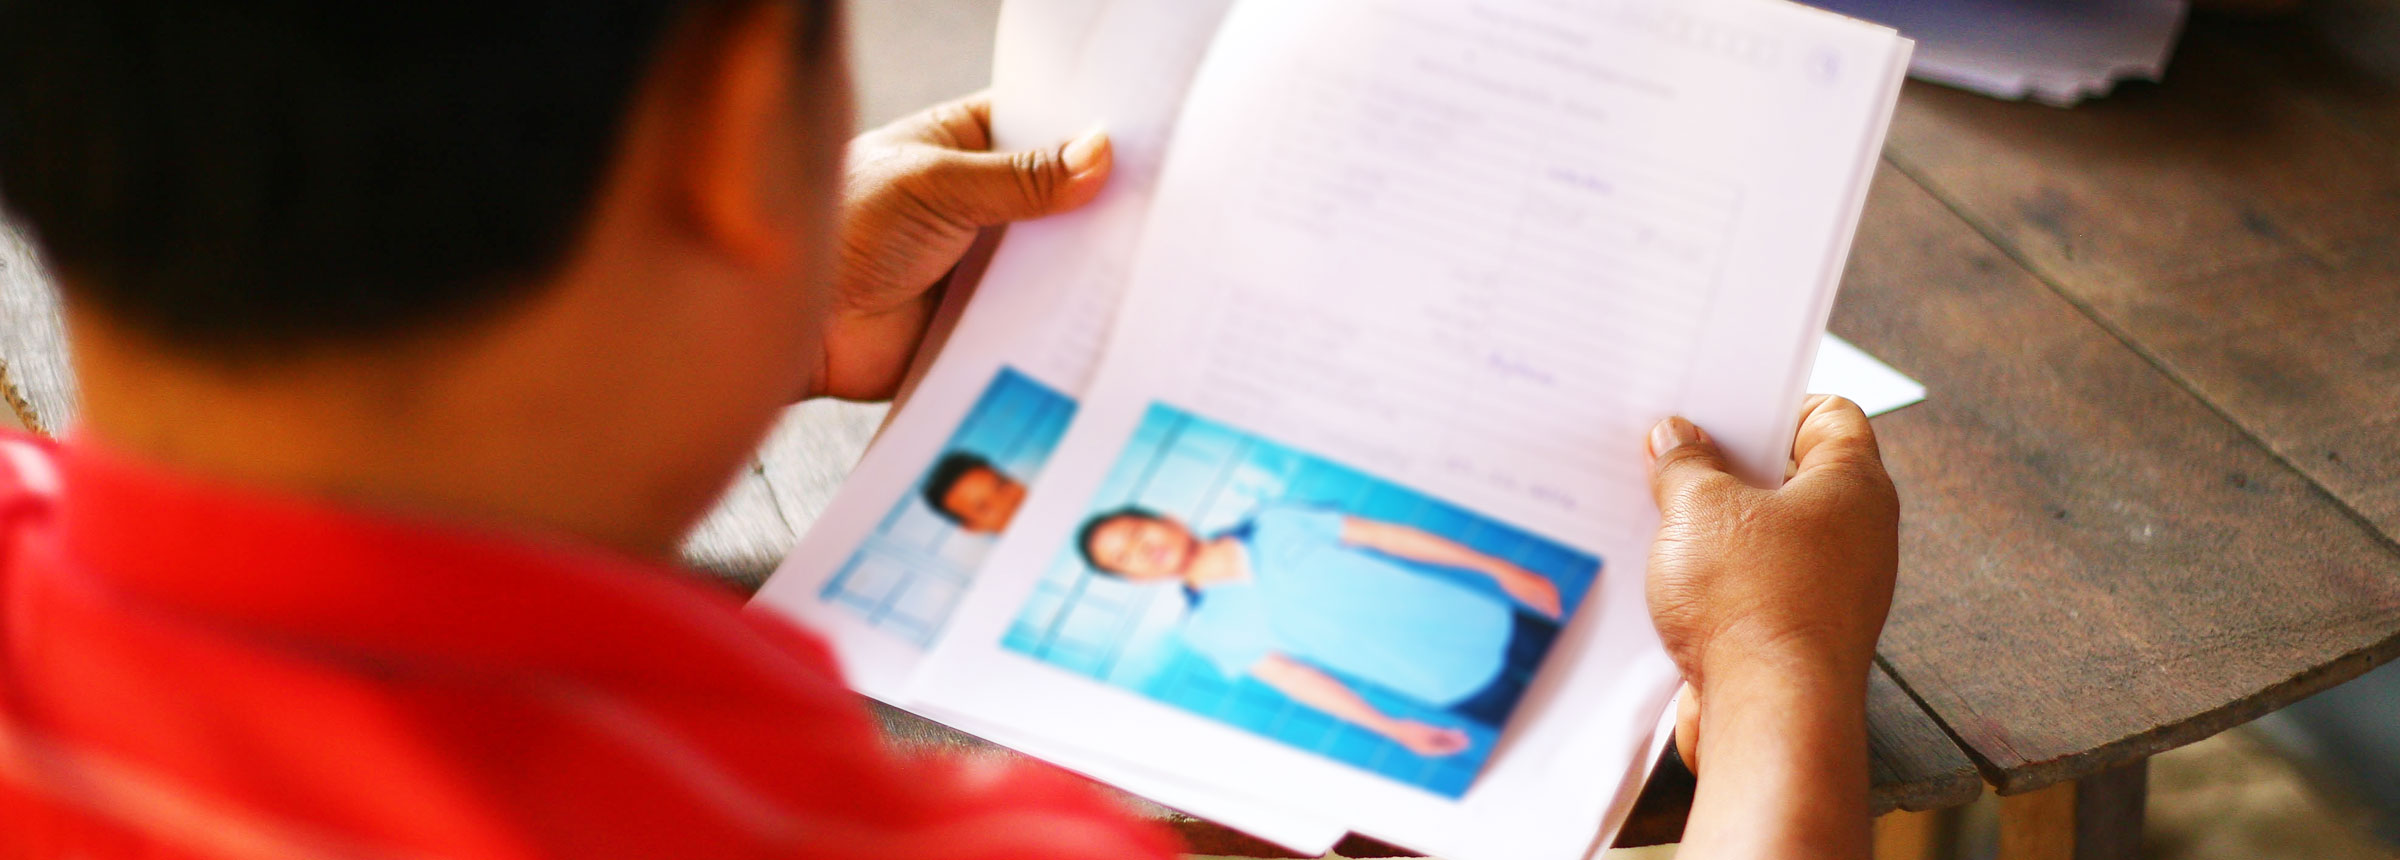 Anti-trafficking officer looking through ID documents